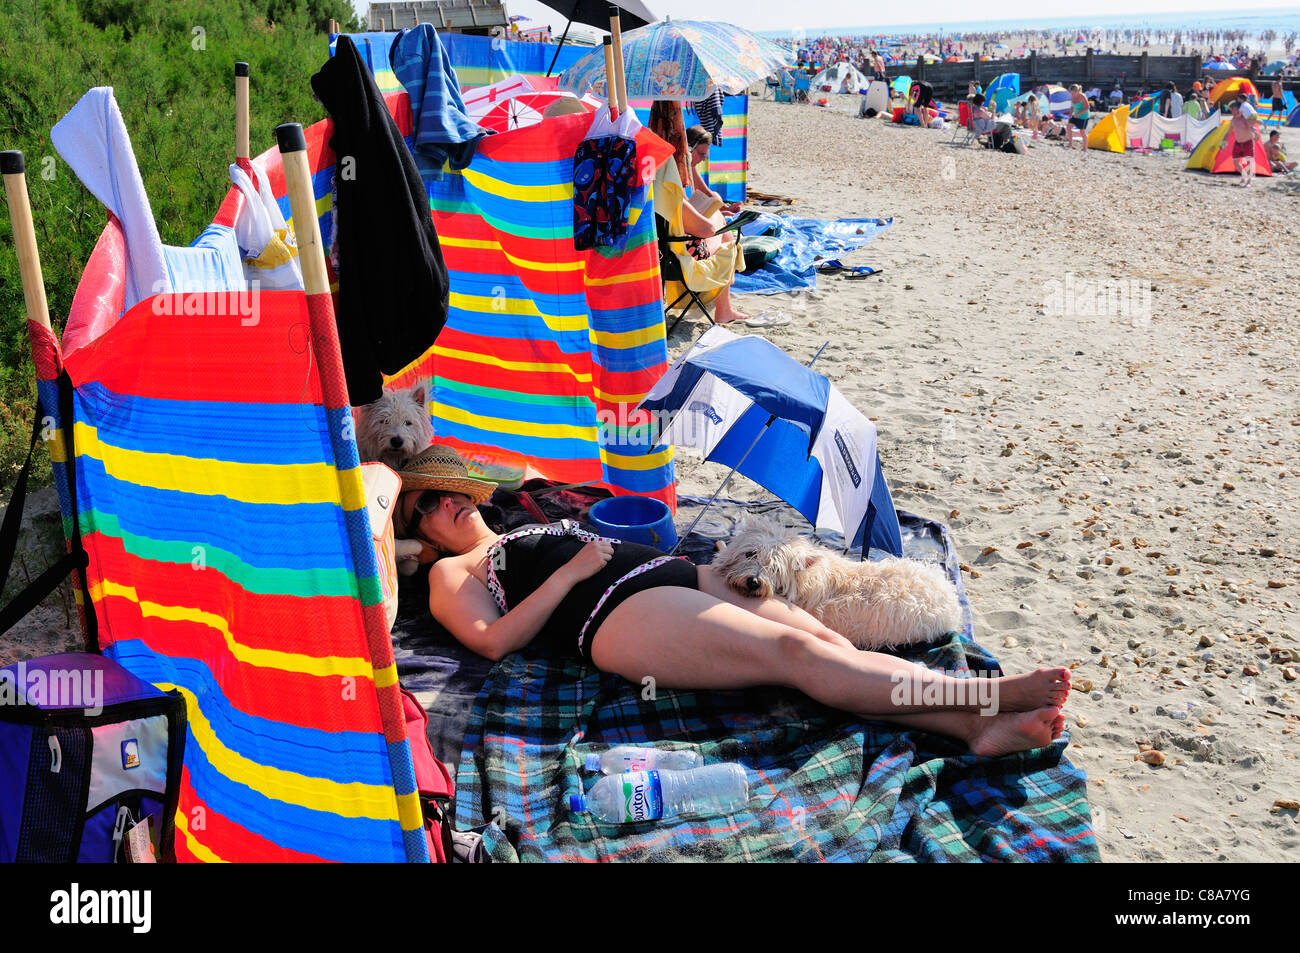 Crowds sunbathing on West Wiittering beach during the unusualy hot weekend  of 1st 2nd October 2011 - Stock Image